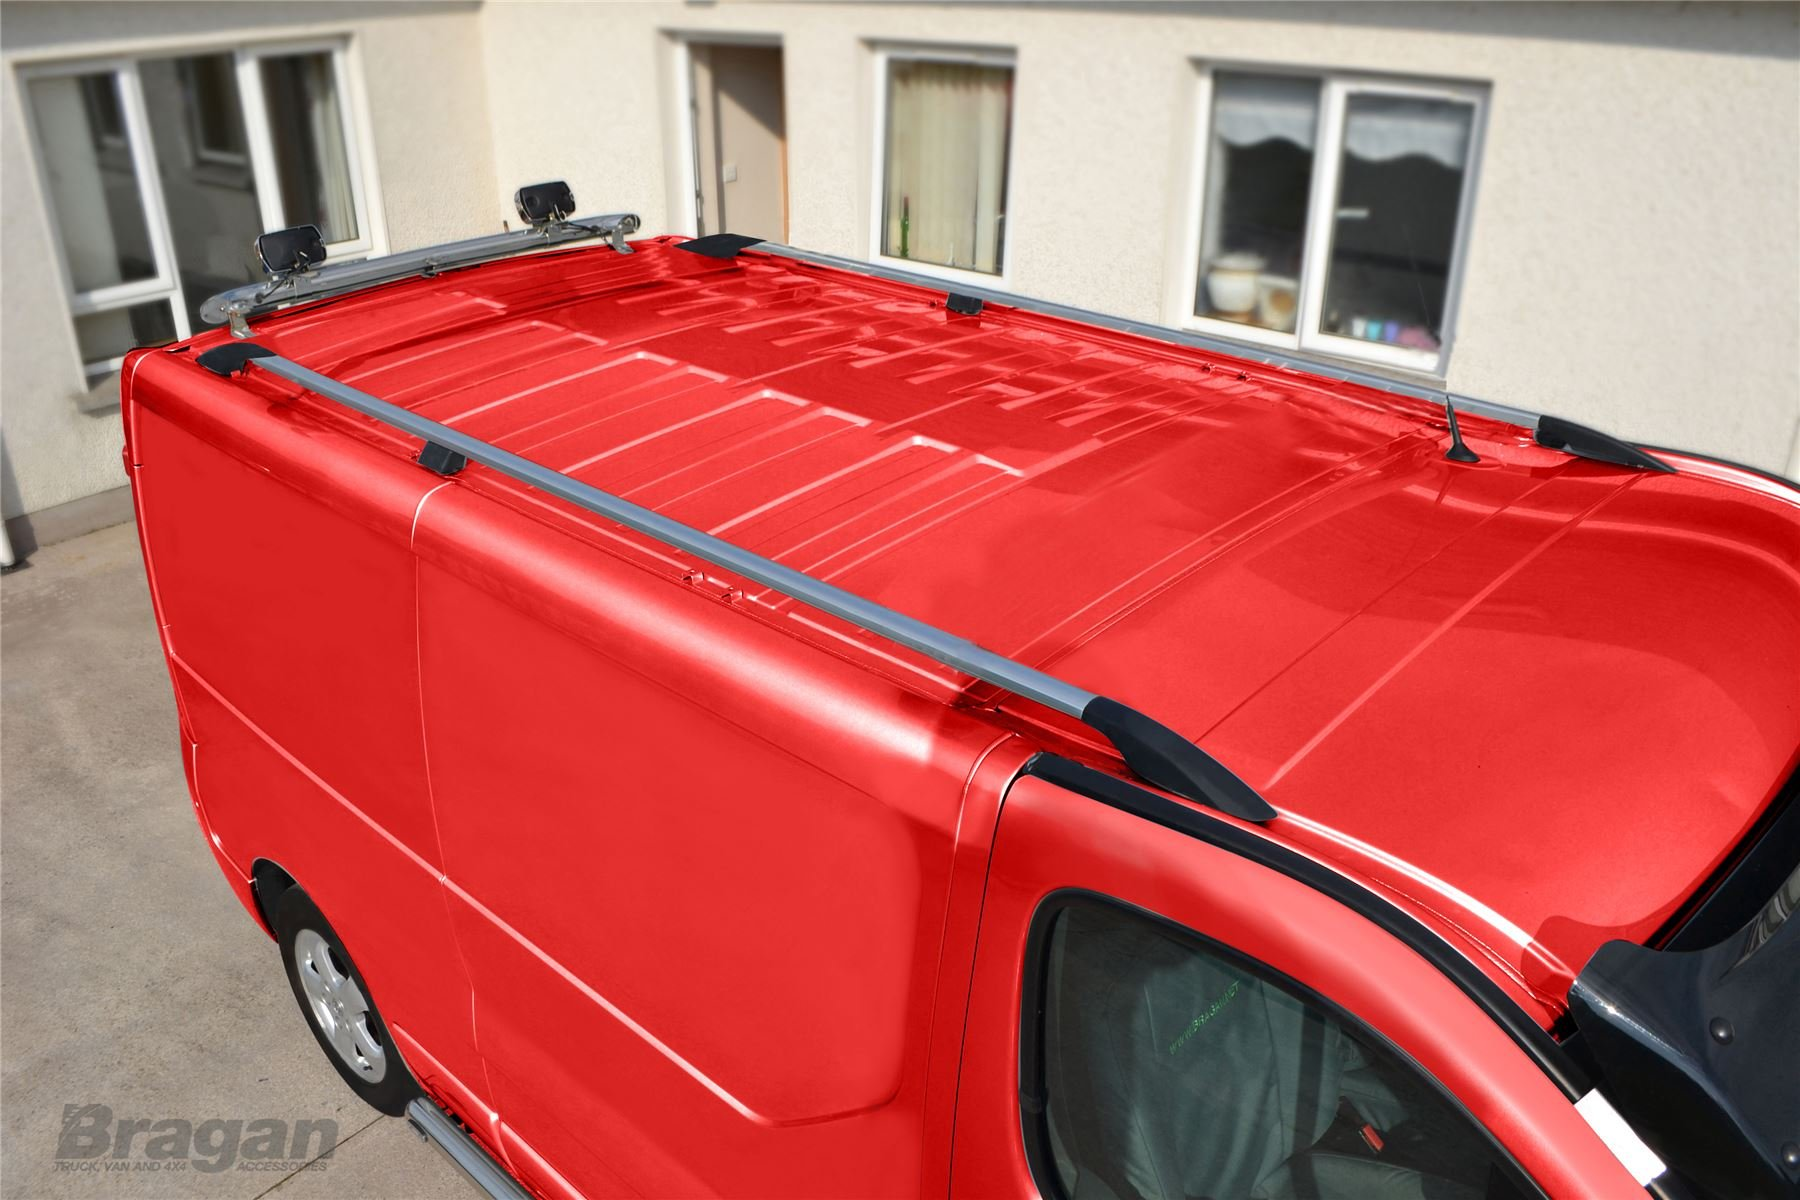 2002-14 ALVM Parts /& Accessories Black Cross Bars To Fit Roof Rack To Fit Vivaro